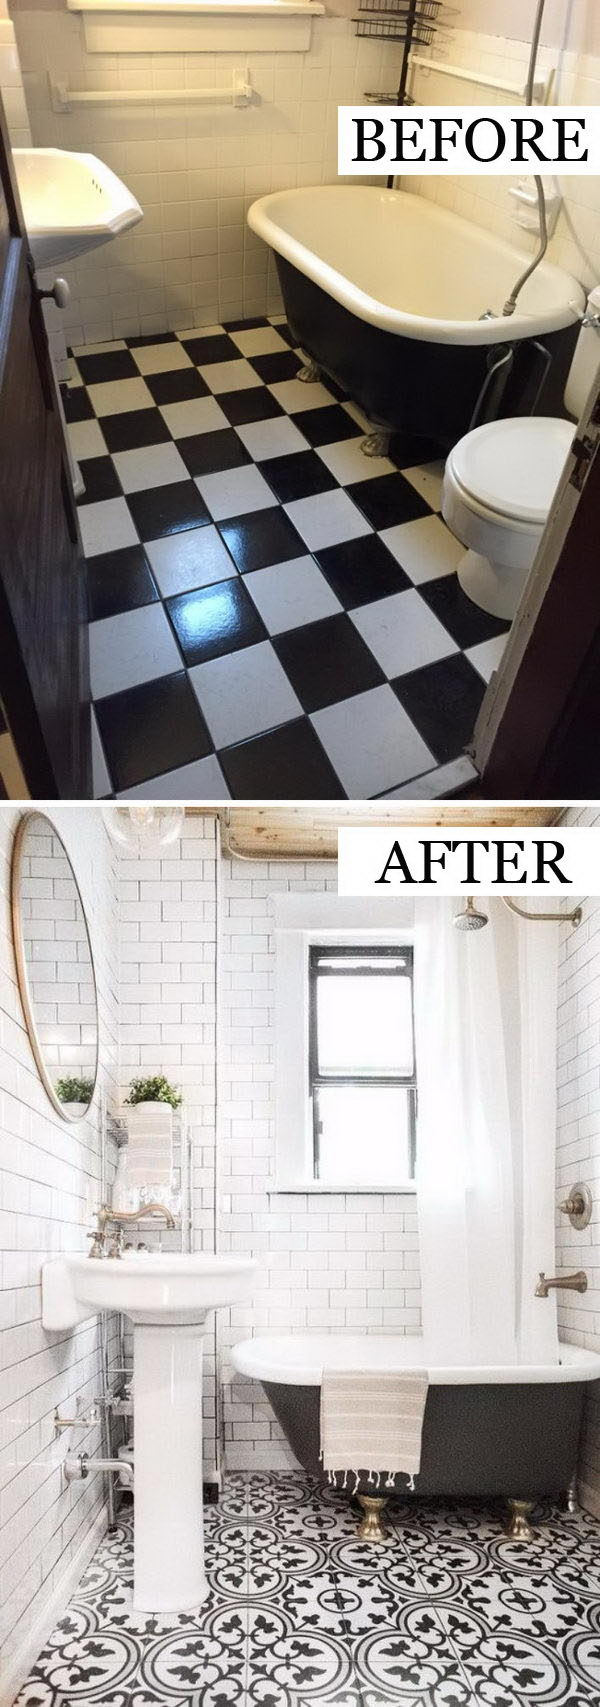 Keeping The Walls White Prevents The Black and White Retro Floor Tile from Feeling Busy.